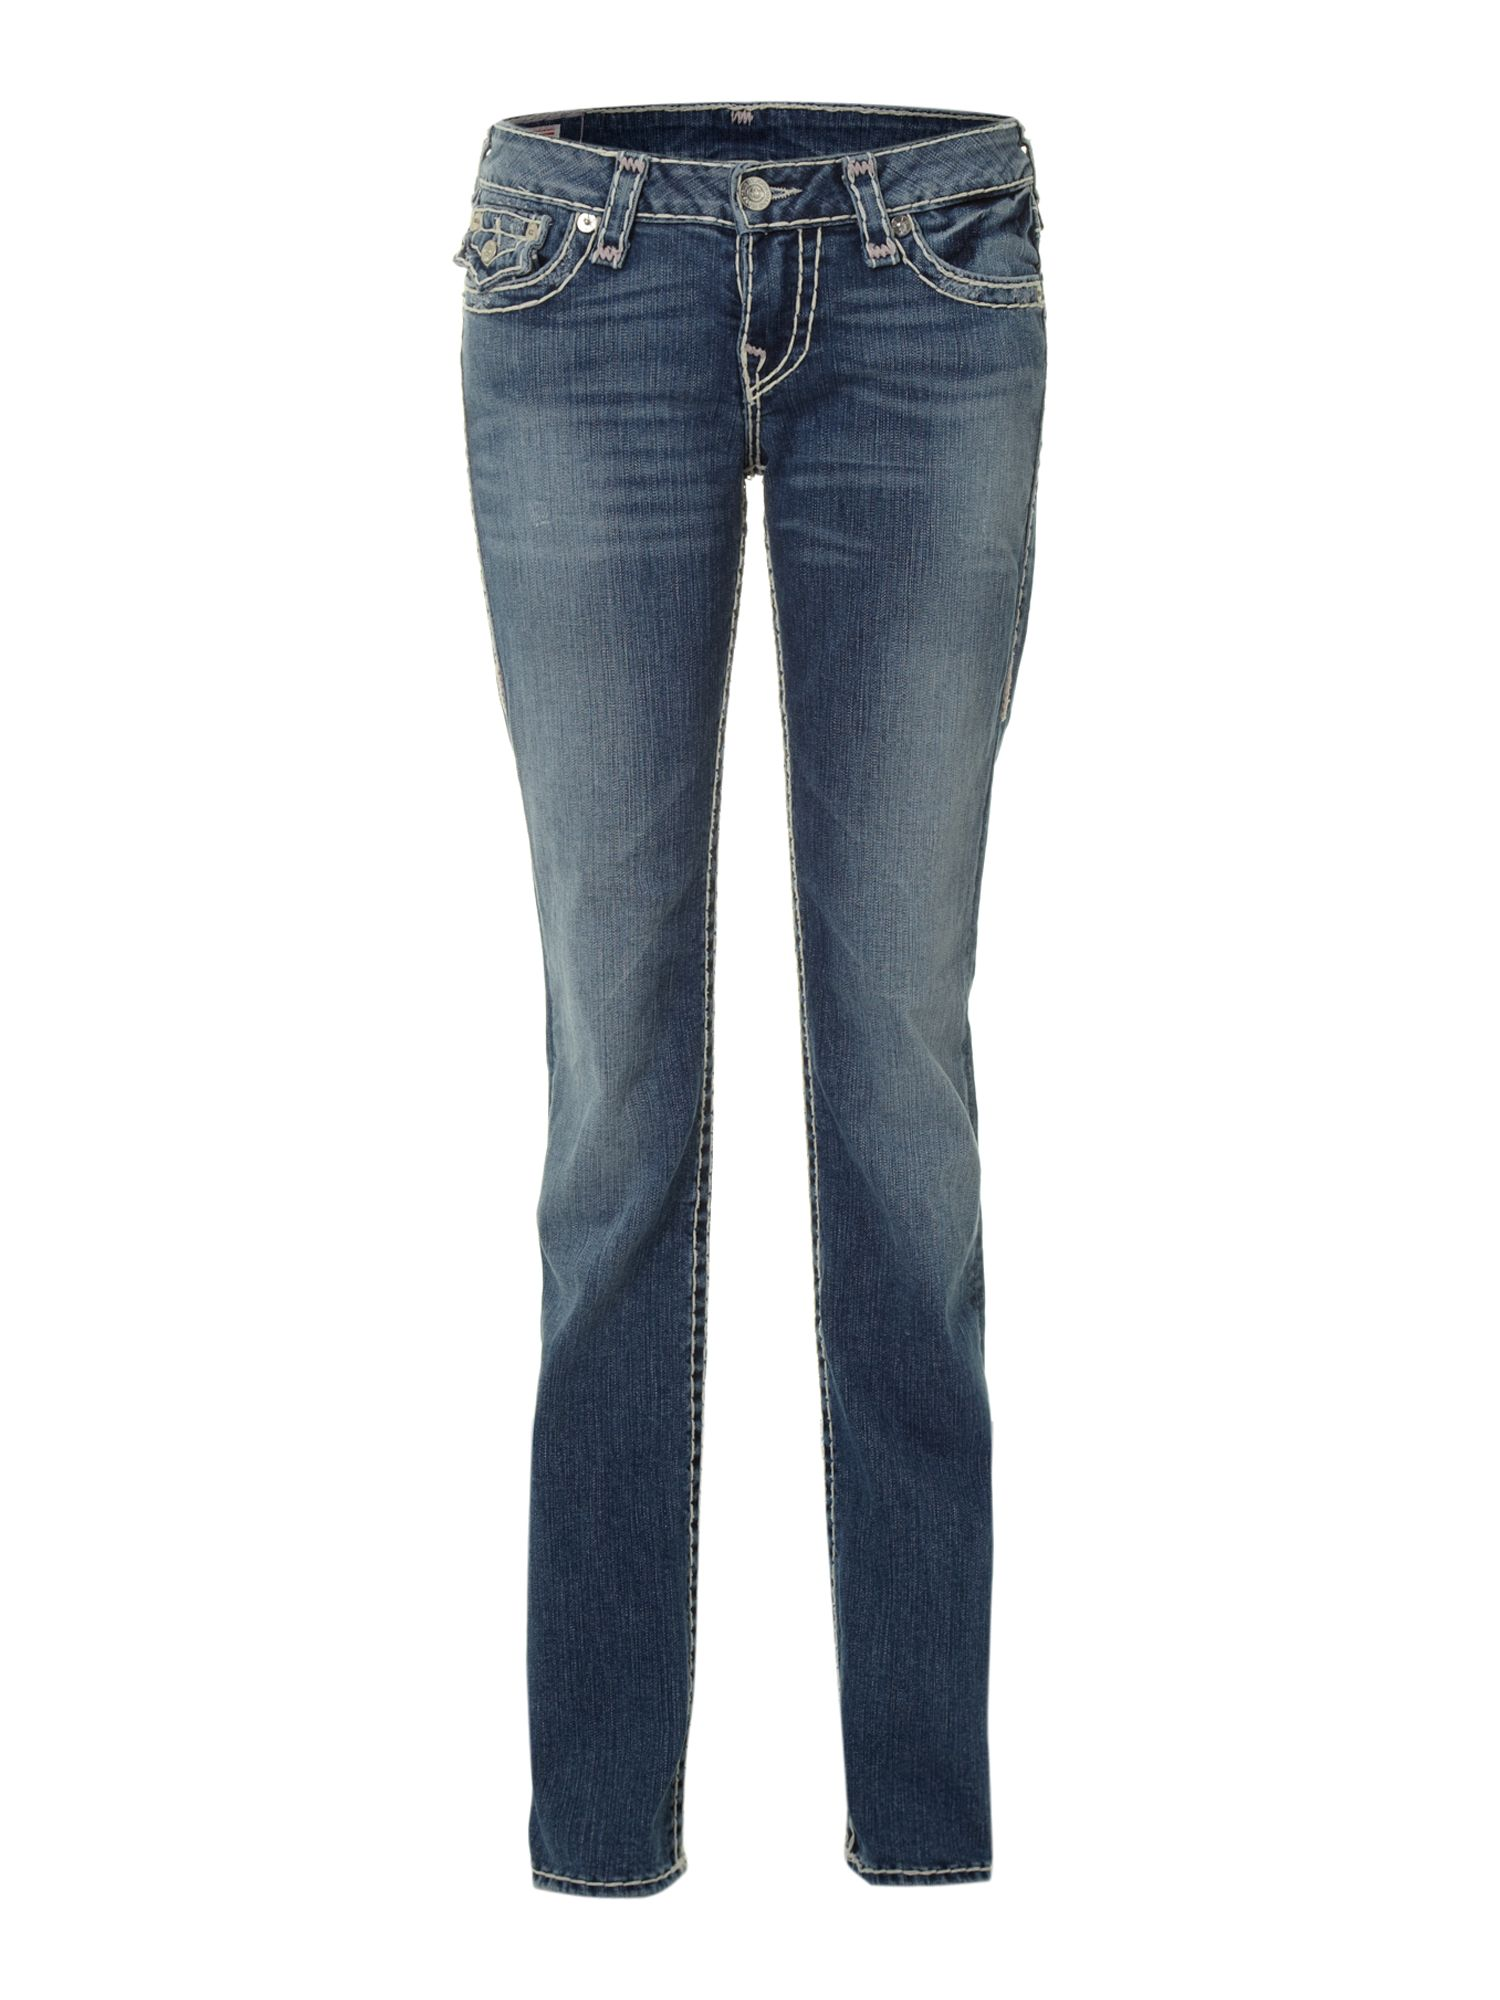 Billy straight leg super t jeans